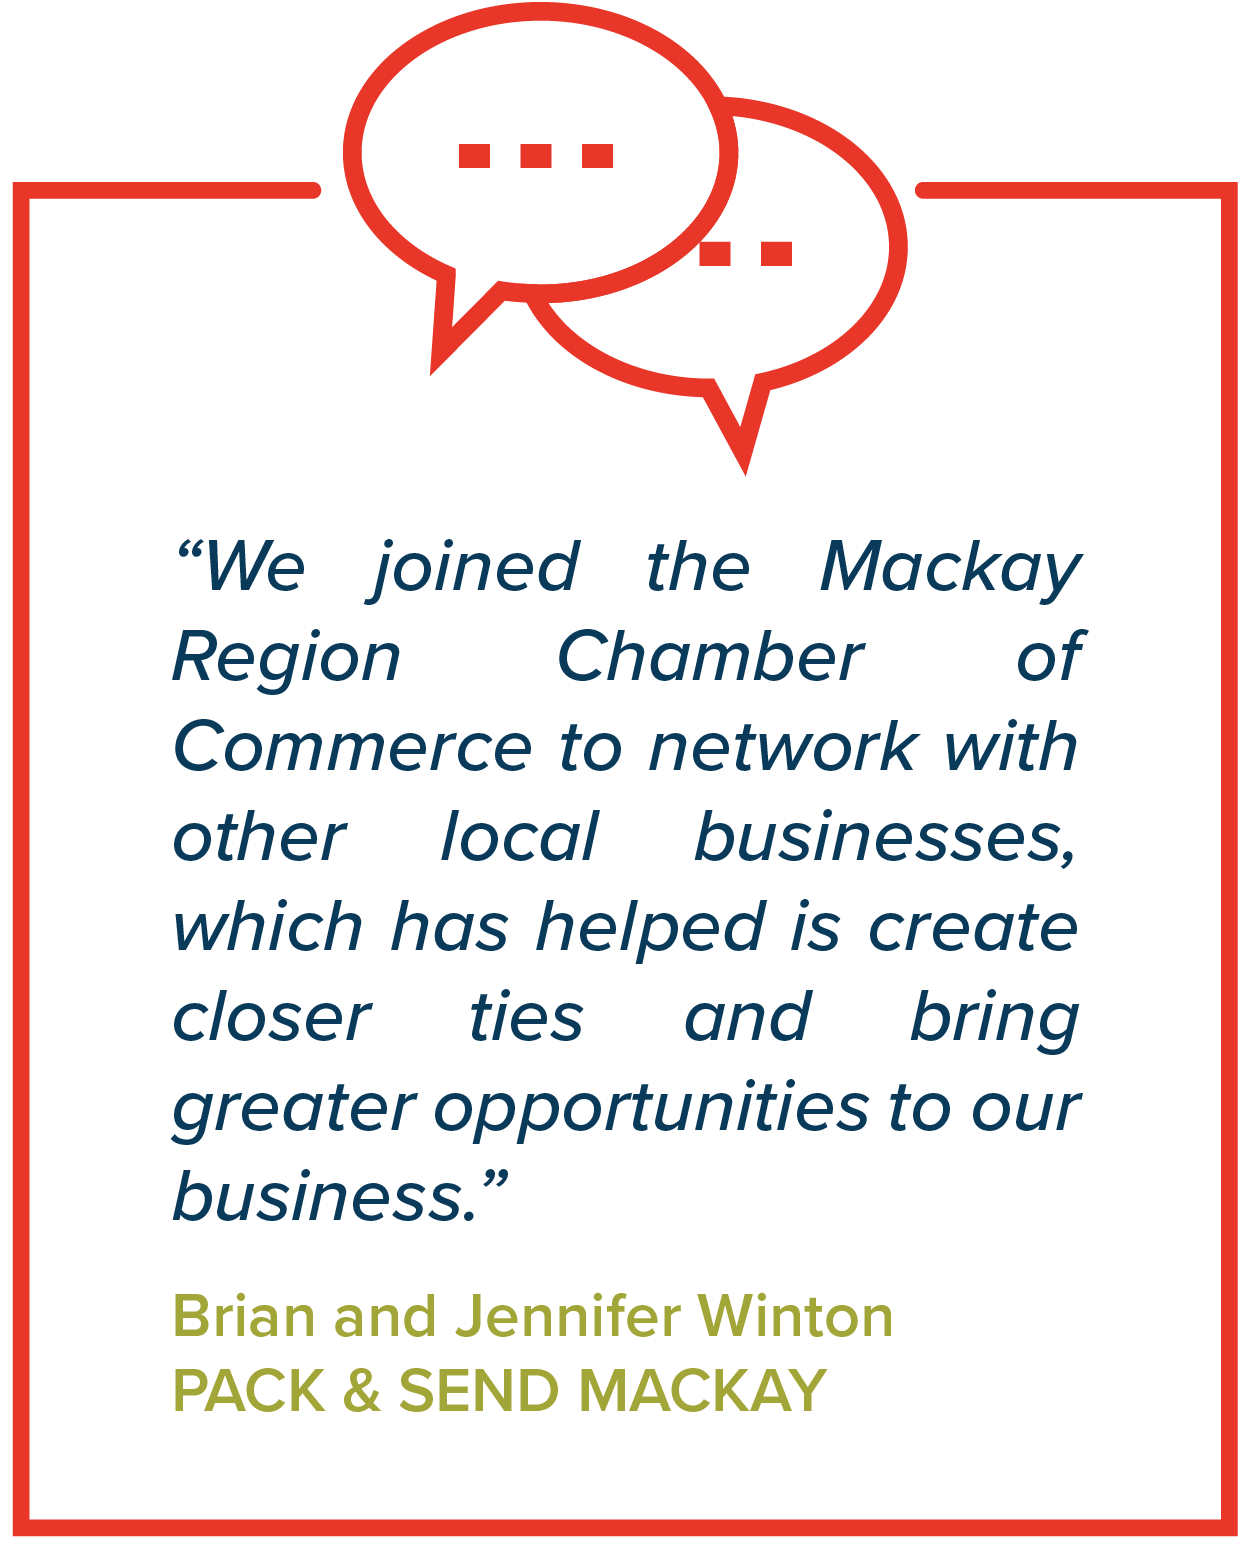 """""""We joined the Mackay Region Chamber of Commerce to network with other local businesses, which has helped is create closer ties and bring greater opportunities to our business.""""   Brian & Jennifer Winton, Pack & Send Mackay"""